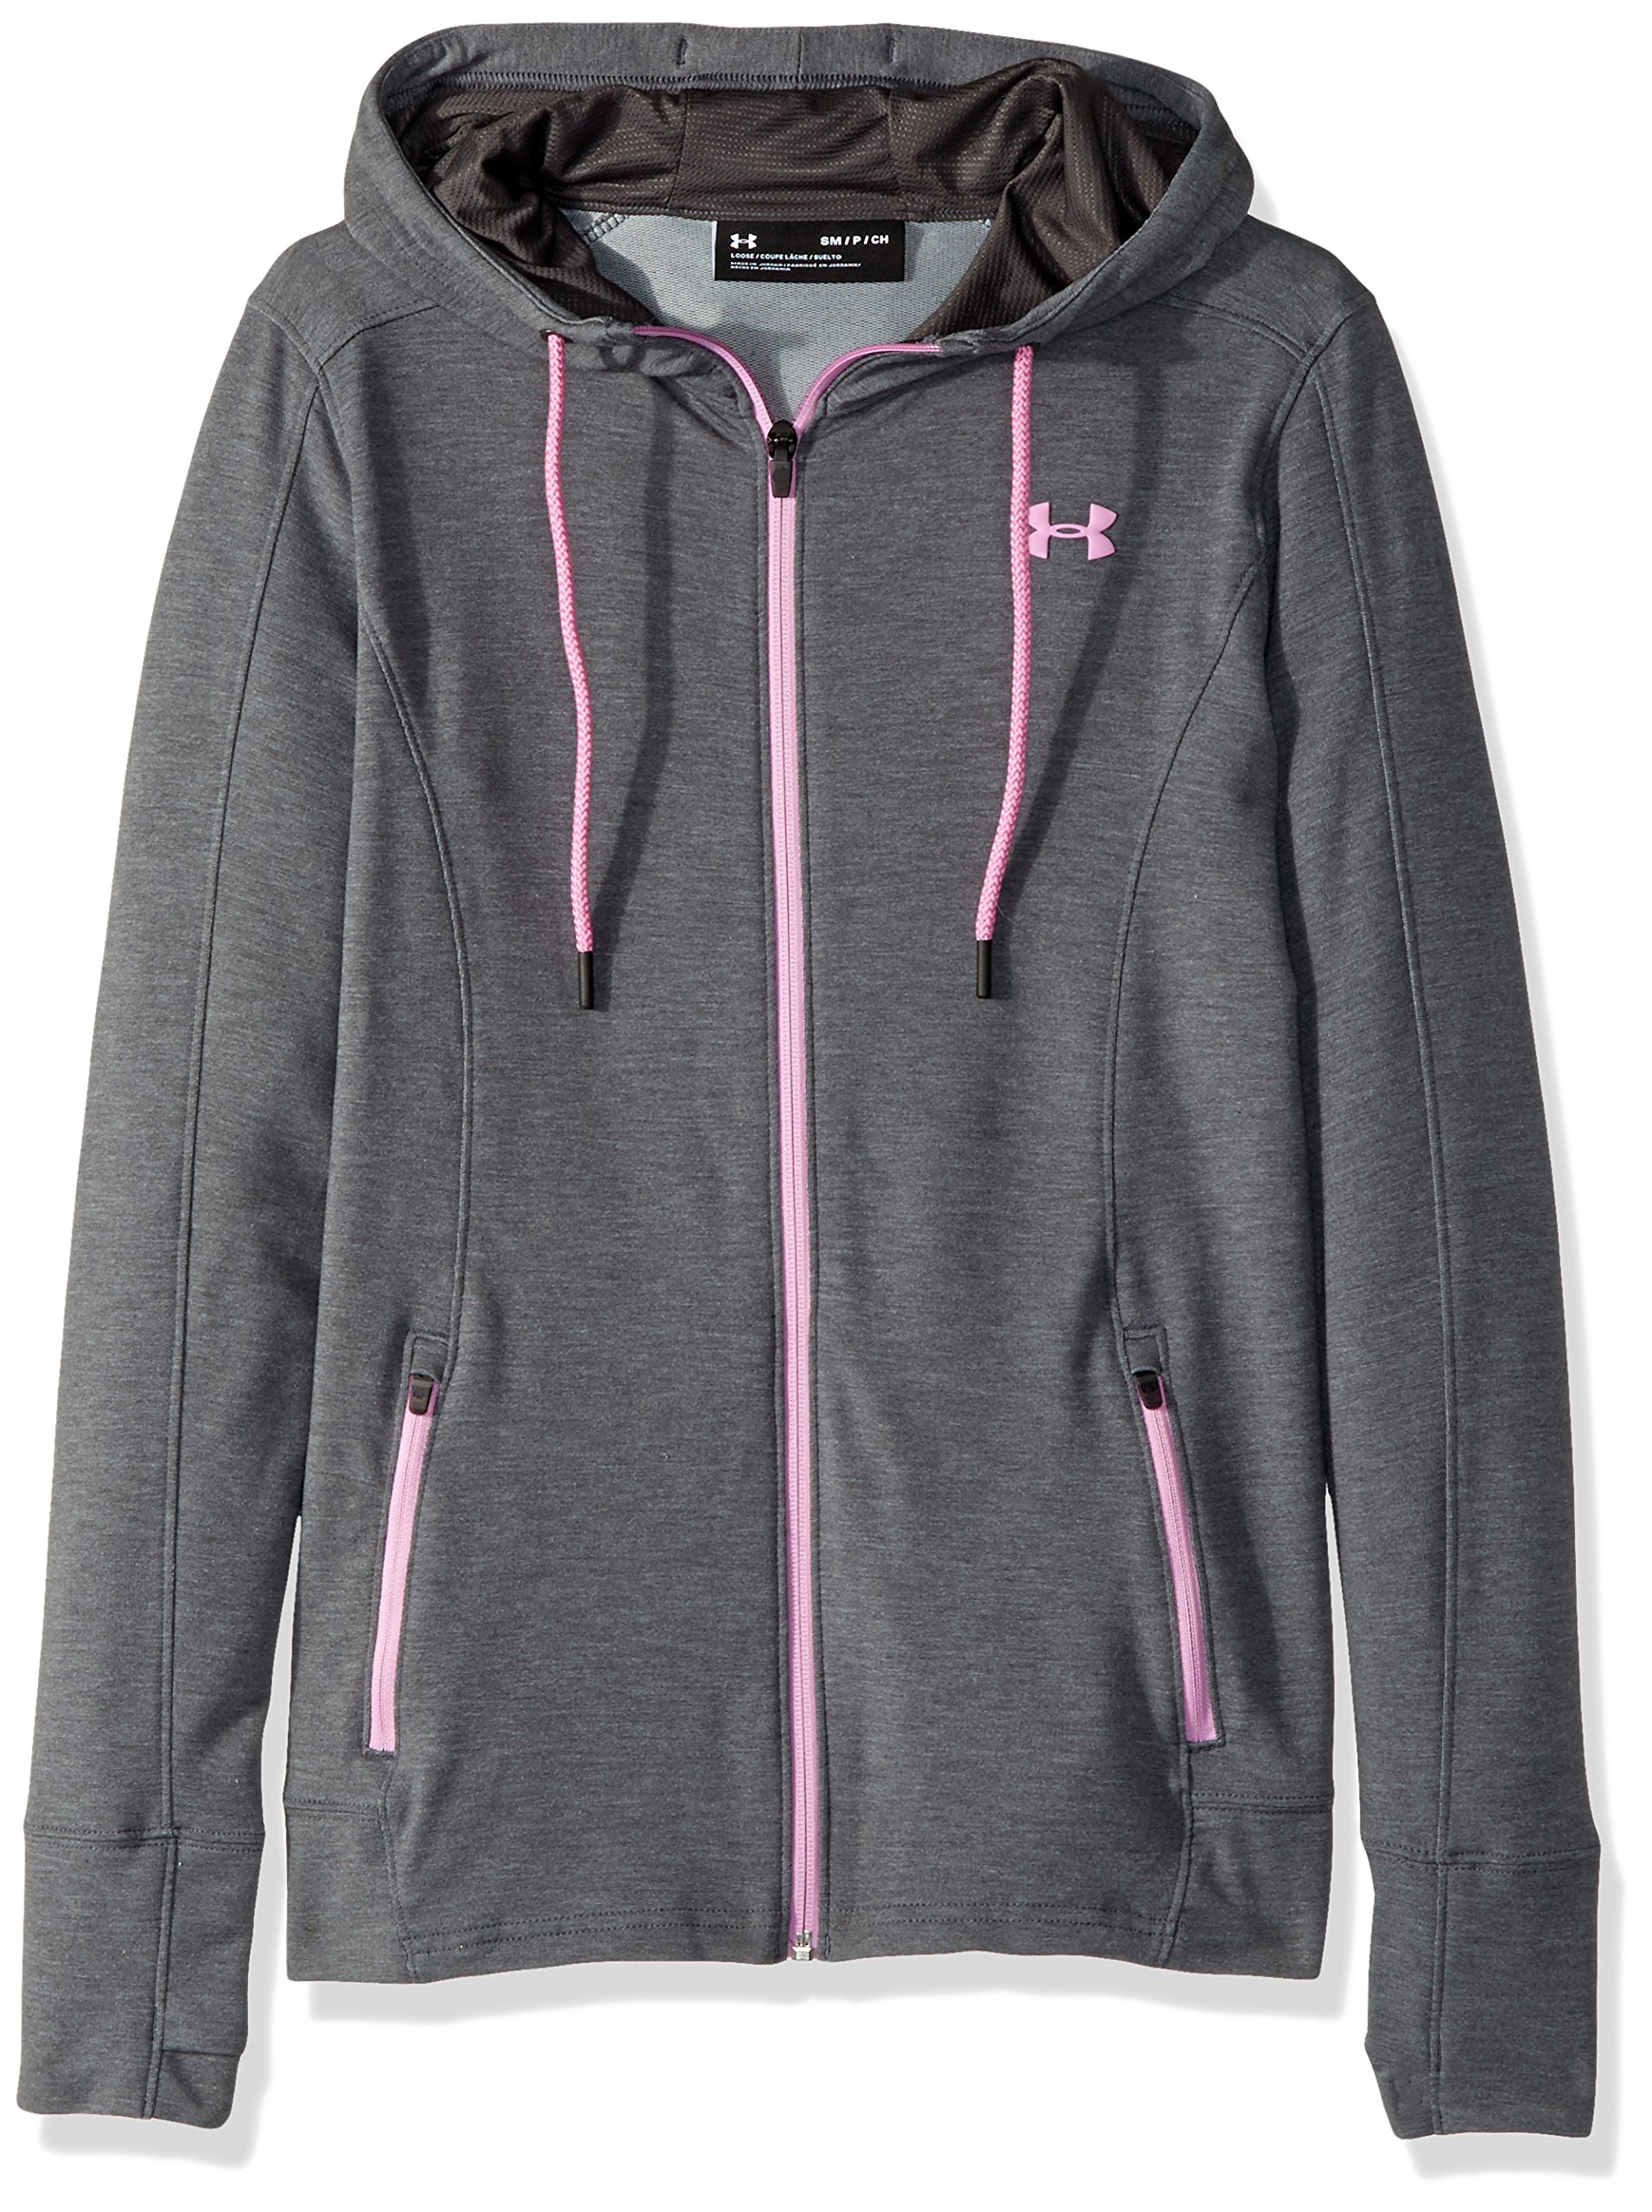 Under Armour Women's Featherweight Full Zip Hoodie, Carbon Heather (090)/Icelandic Rose, X-Small